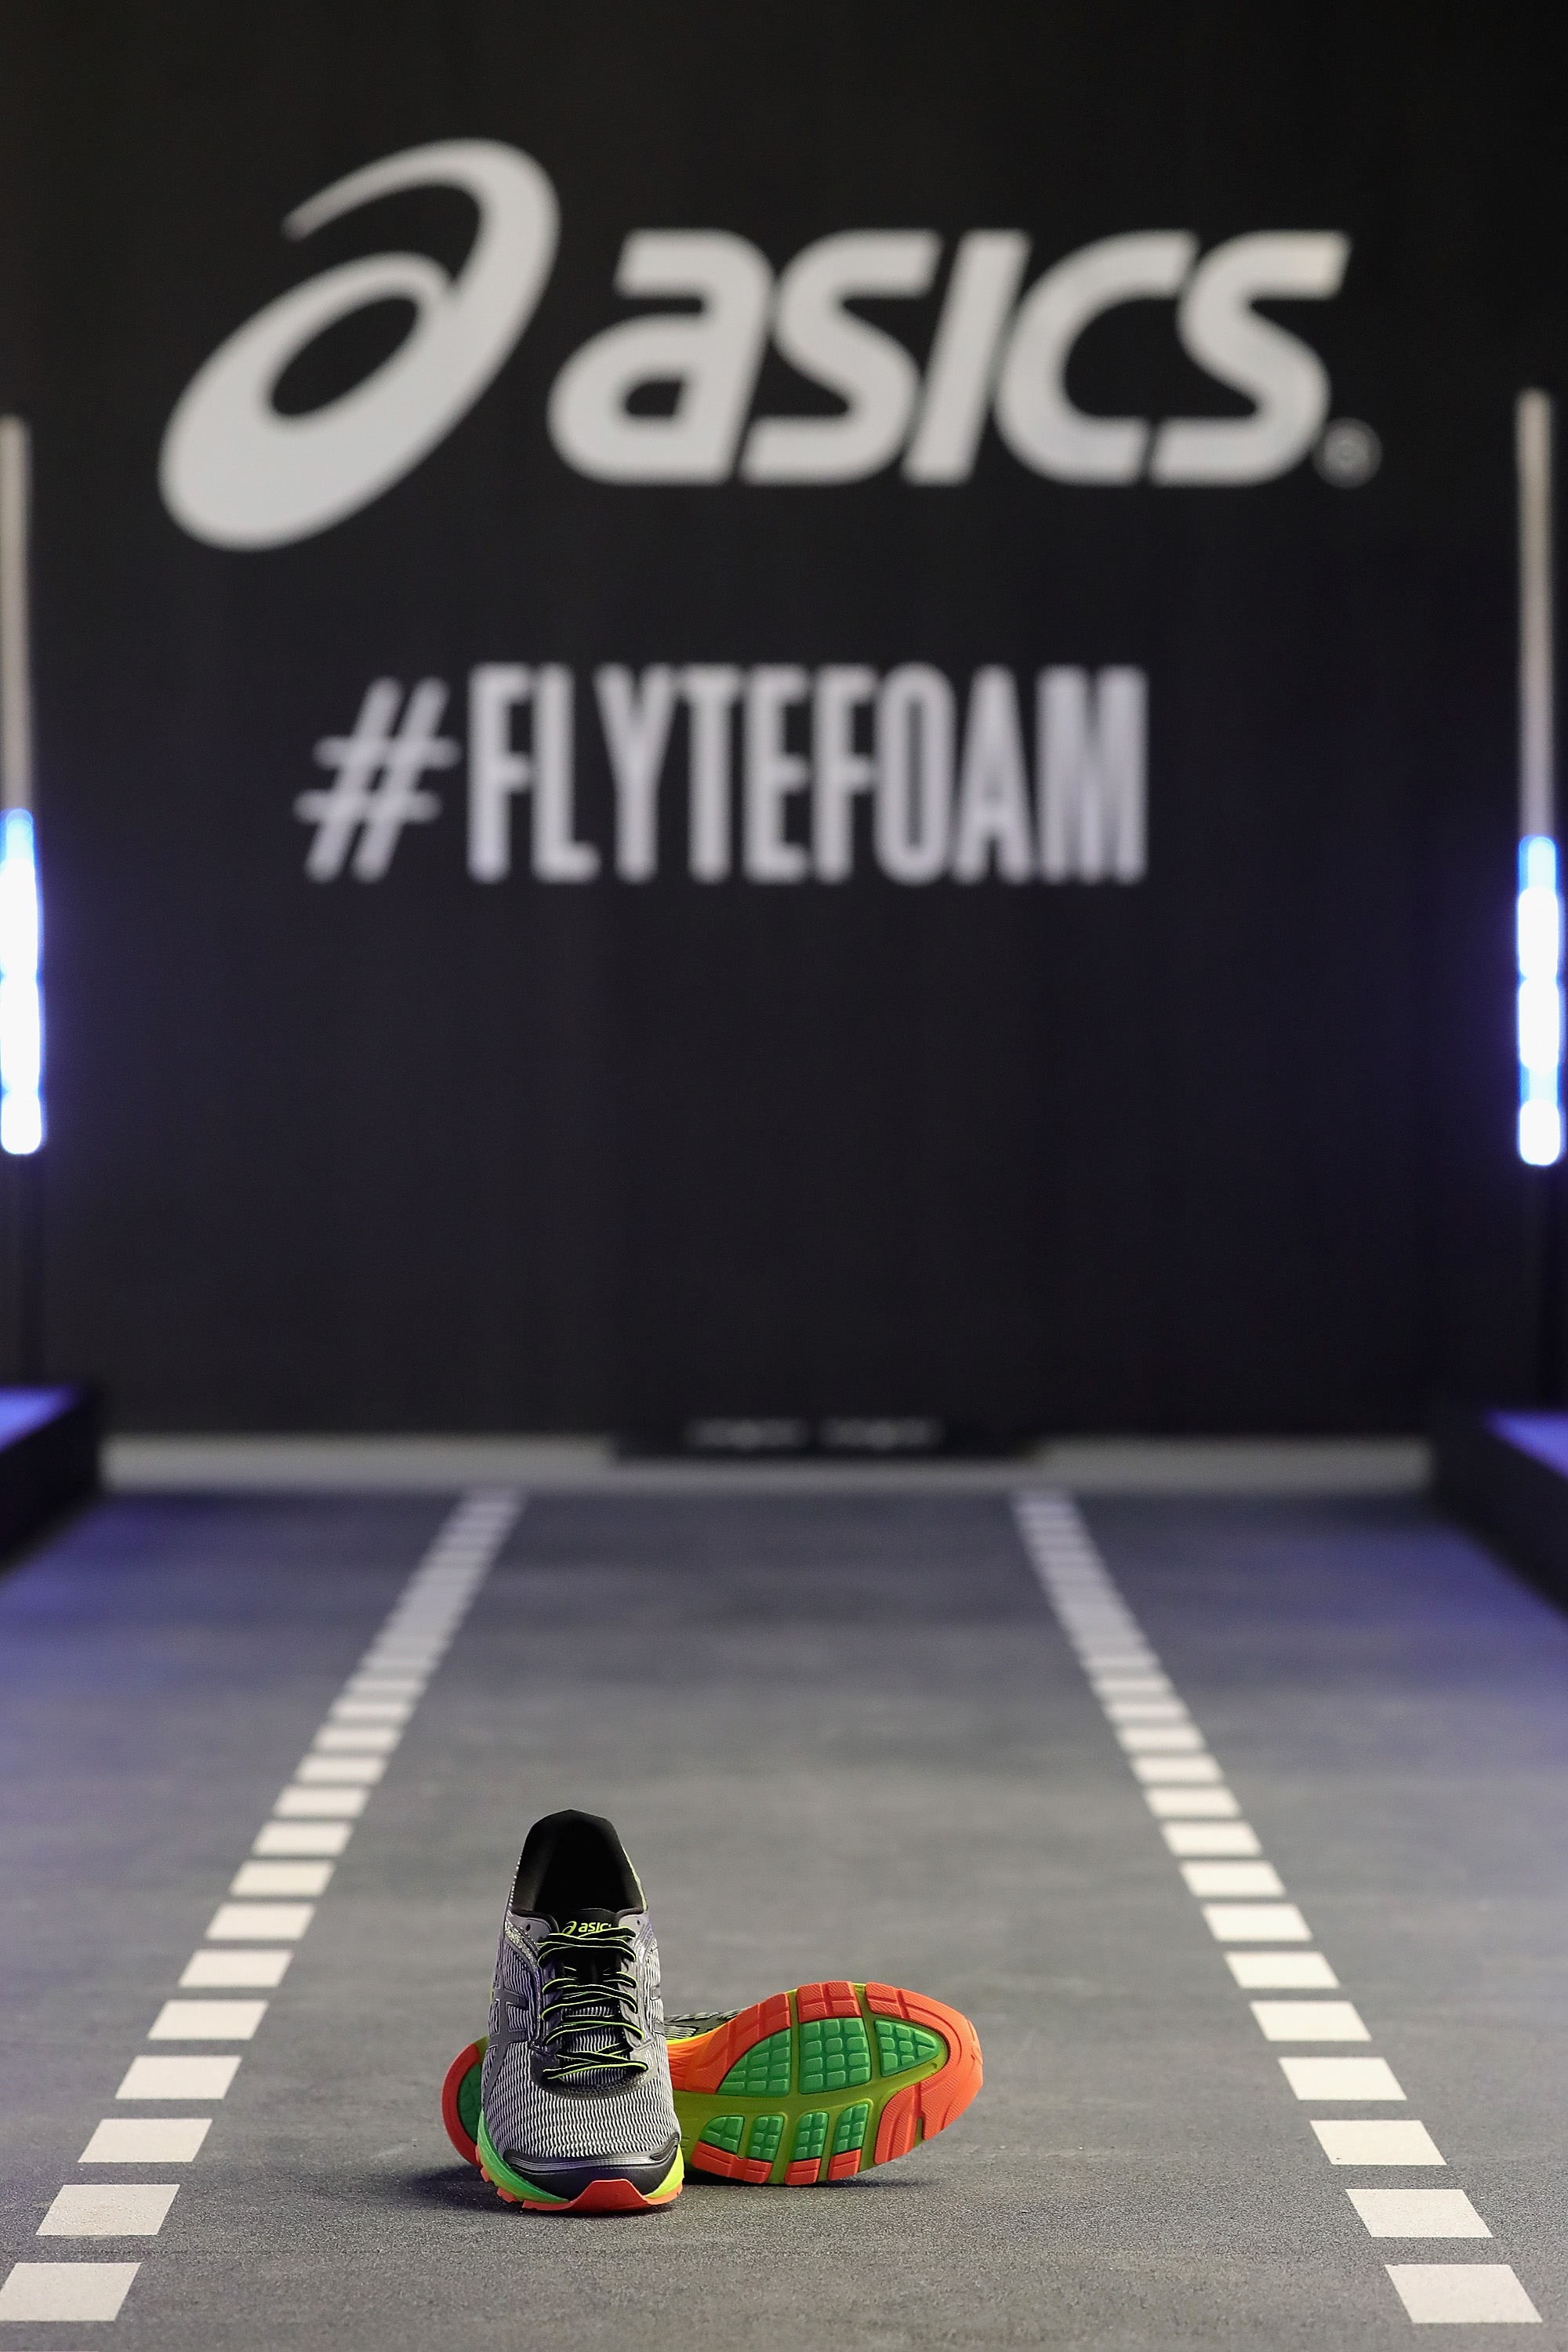 NEW YORK, NY - JUNE 14: ASICS DynaFlyte Global launch event featured the DynaFlyte Deck, a test track specially designed for DynaFlyte, ASICS lightest-ever cushioning shoe for runners who want speed, as seen on June 14, 2016 in New York City. (Photo by Neilson Barnard/Getty Images for ASICS)